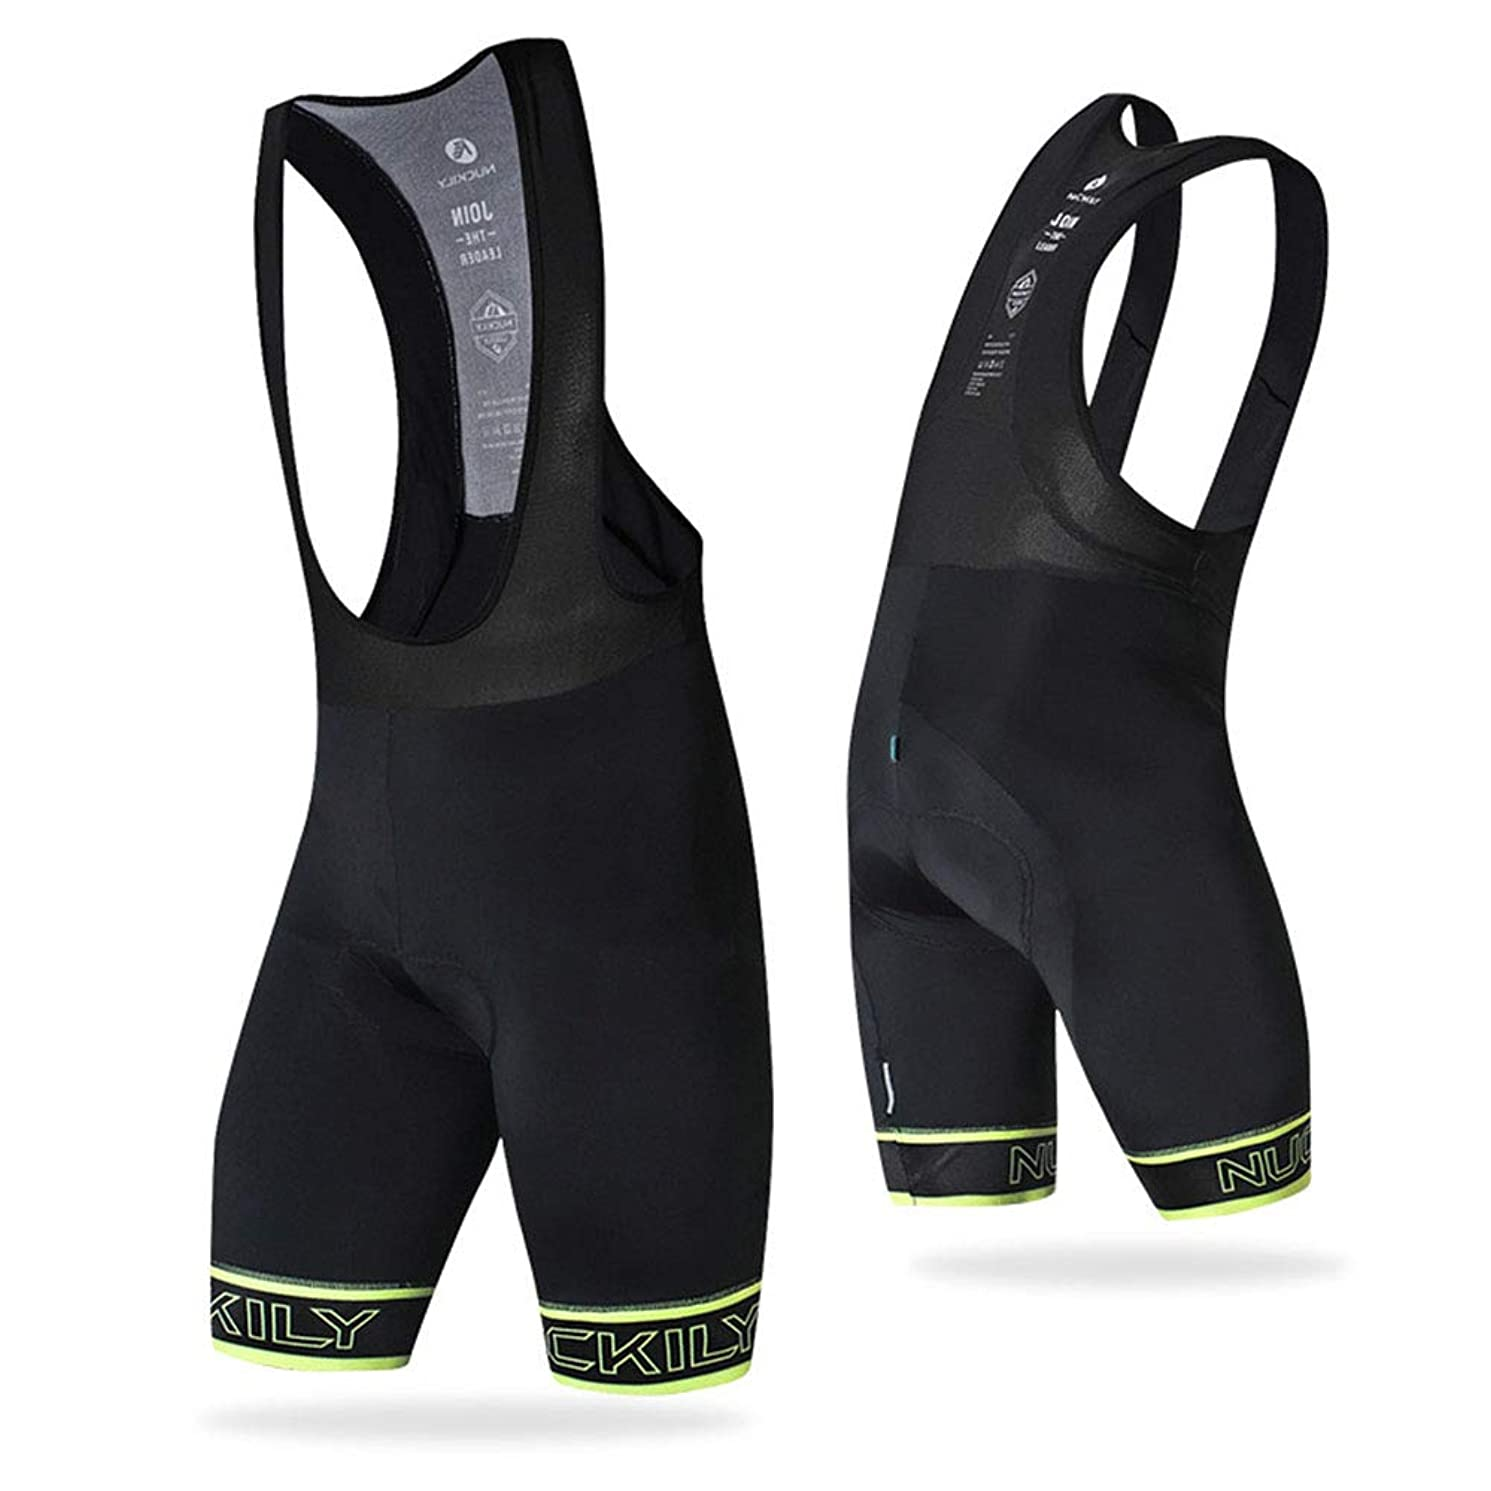 Bib Cycling Shorts,Mens Padded Cycling Shorts,Cycling Shorts with Non-Slip Design, Breathable, Lightweight,Summer